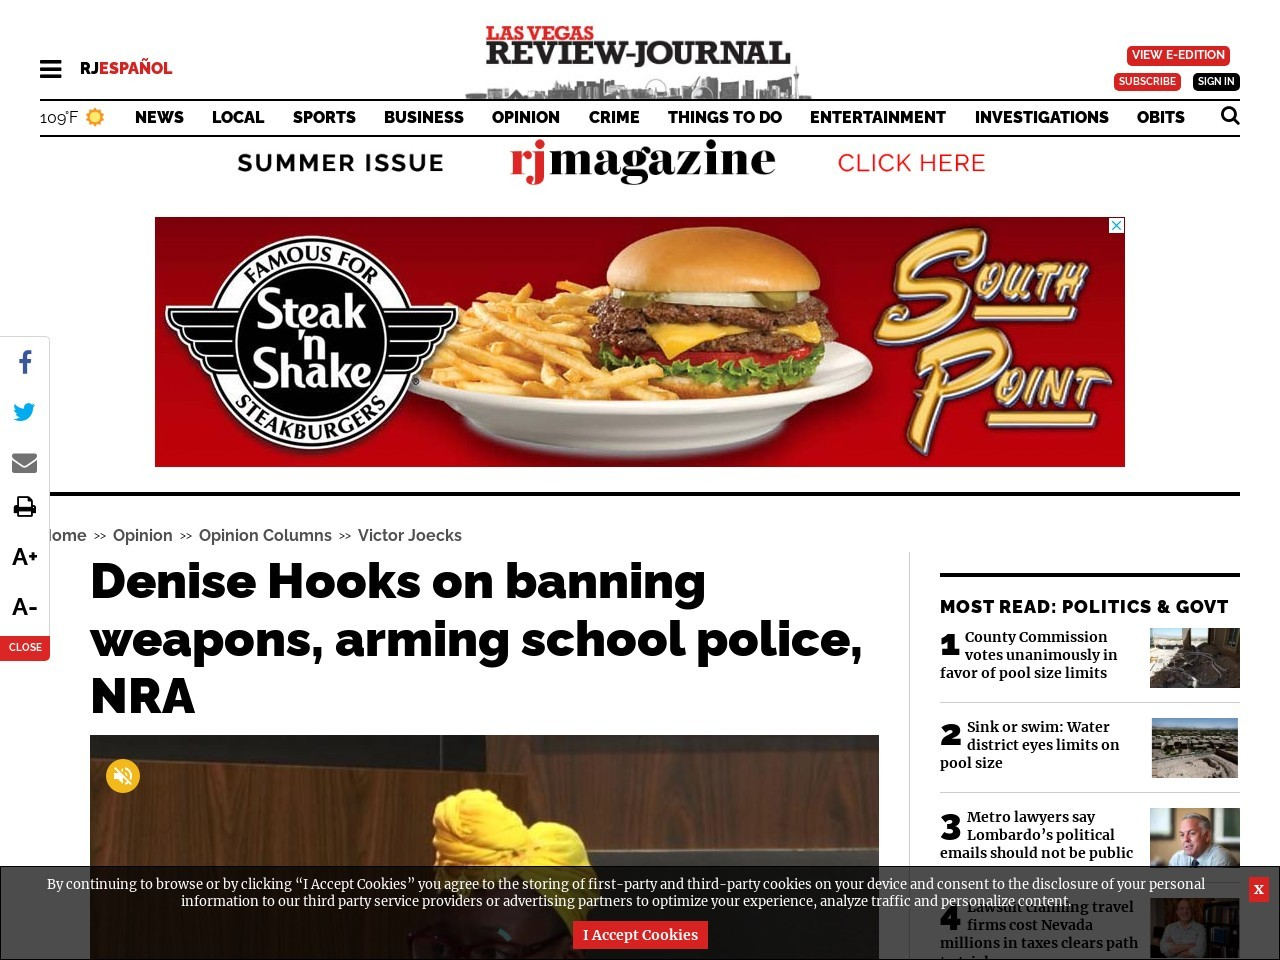 Denise Hooks on banning weapons, arming school police, NRA